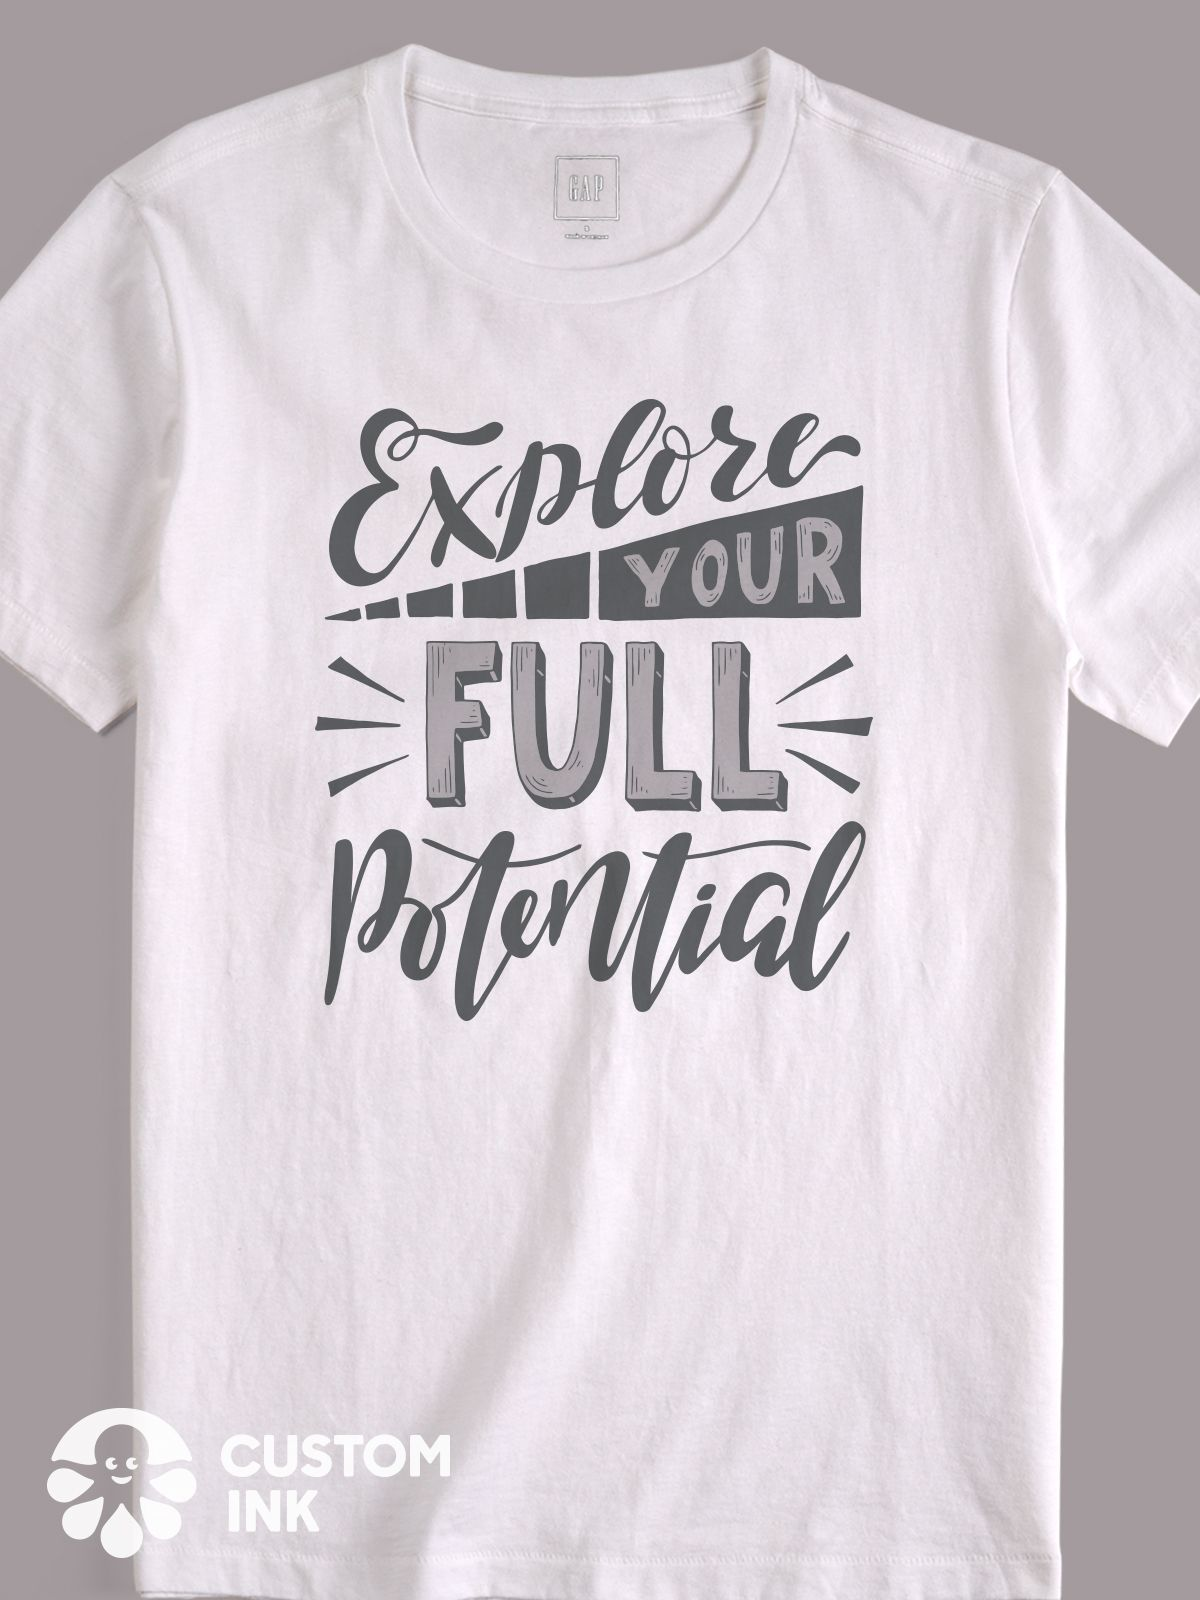 Explore Your Full Potential Is The Perfect Hand Lettered